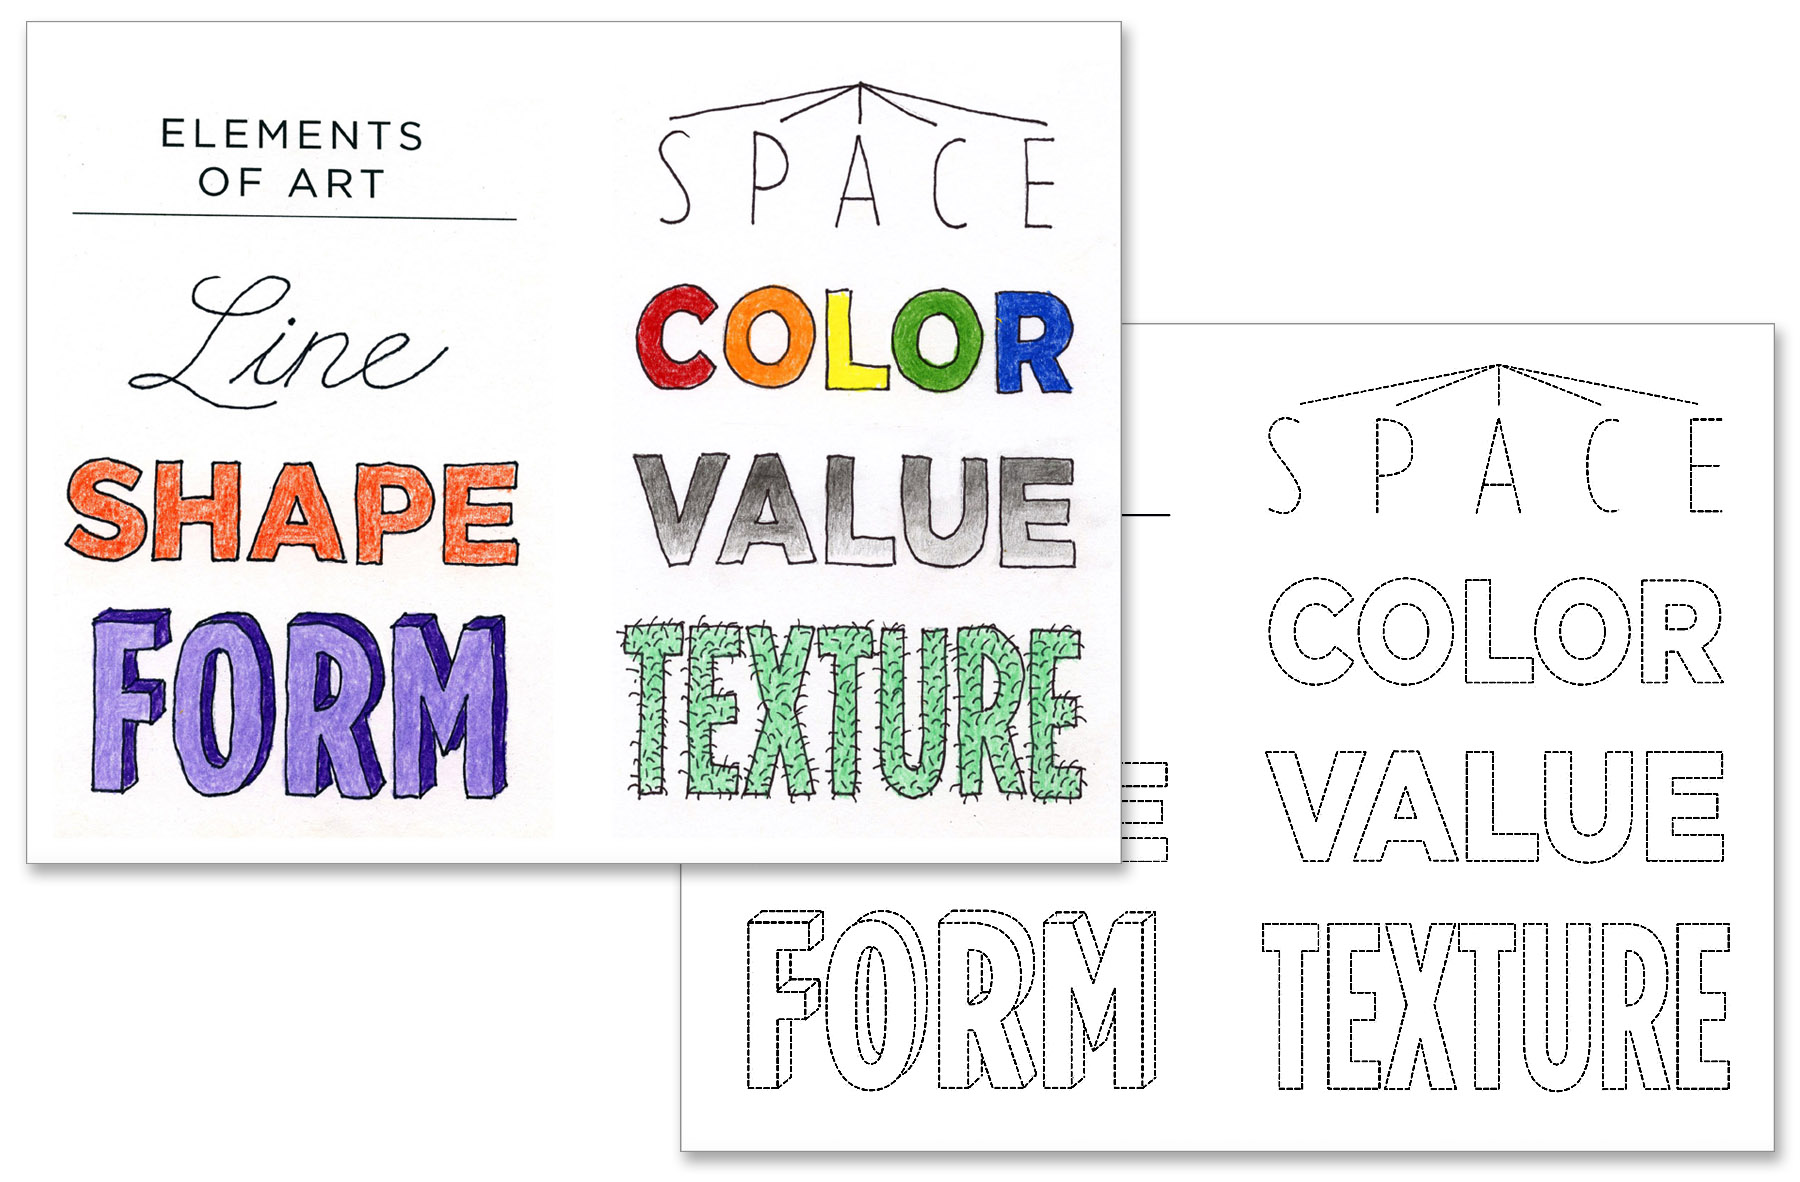 3 Elements Of Art : Elements of art letter page projects for kids